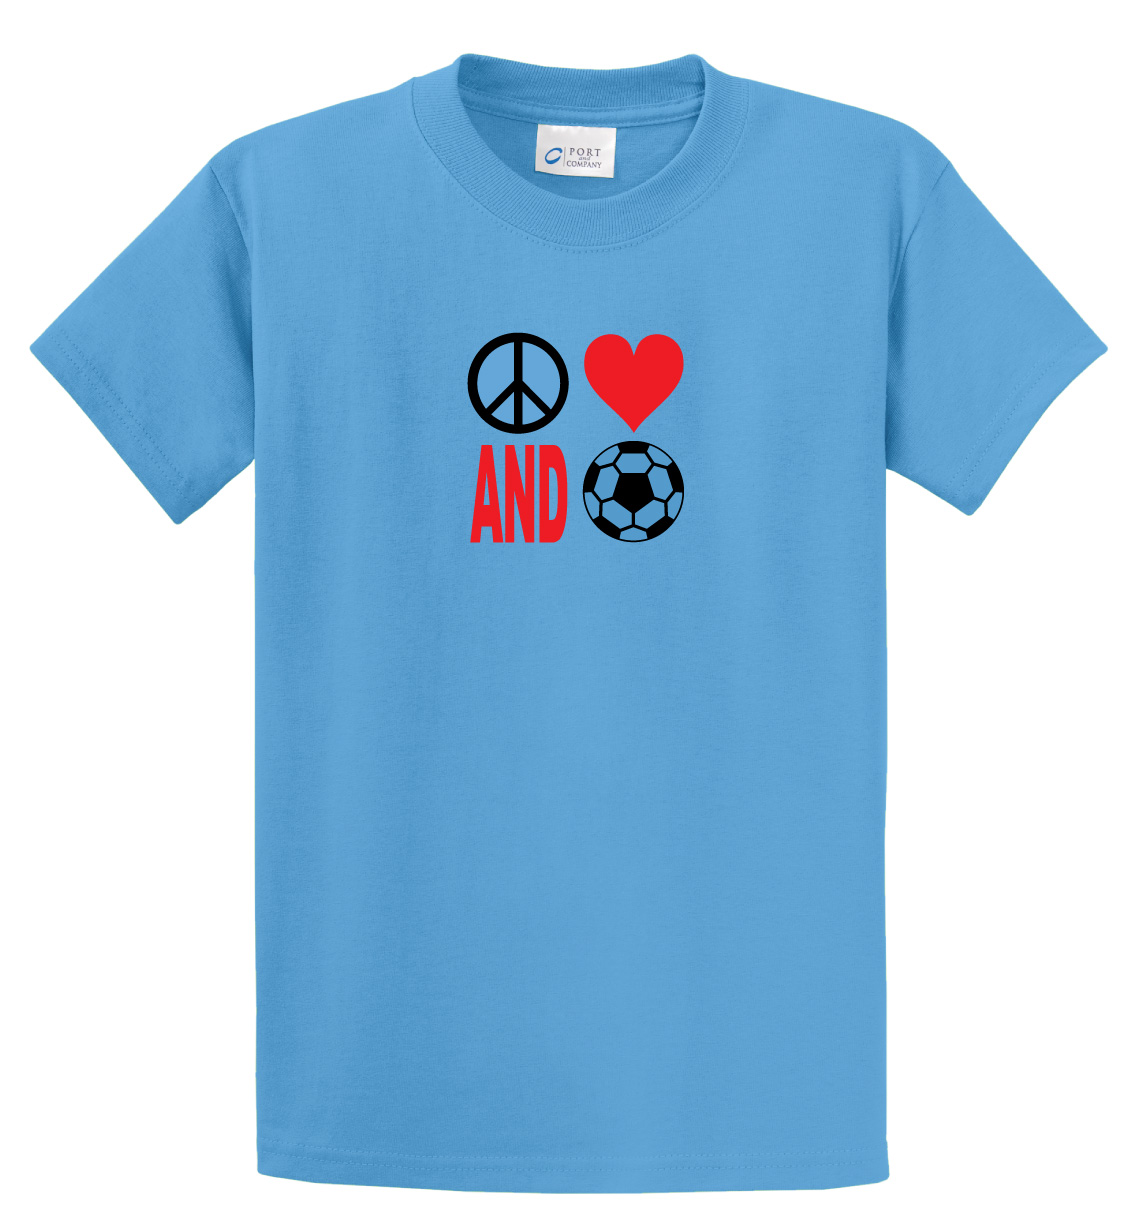 Peace Love and Soccer tee in aqua blue by Code Four Athletics